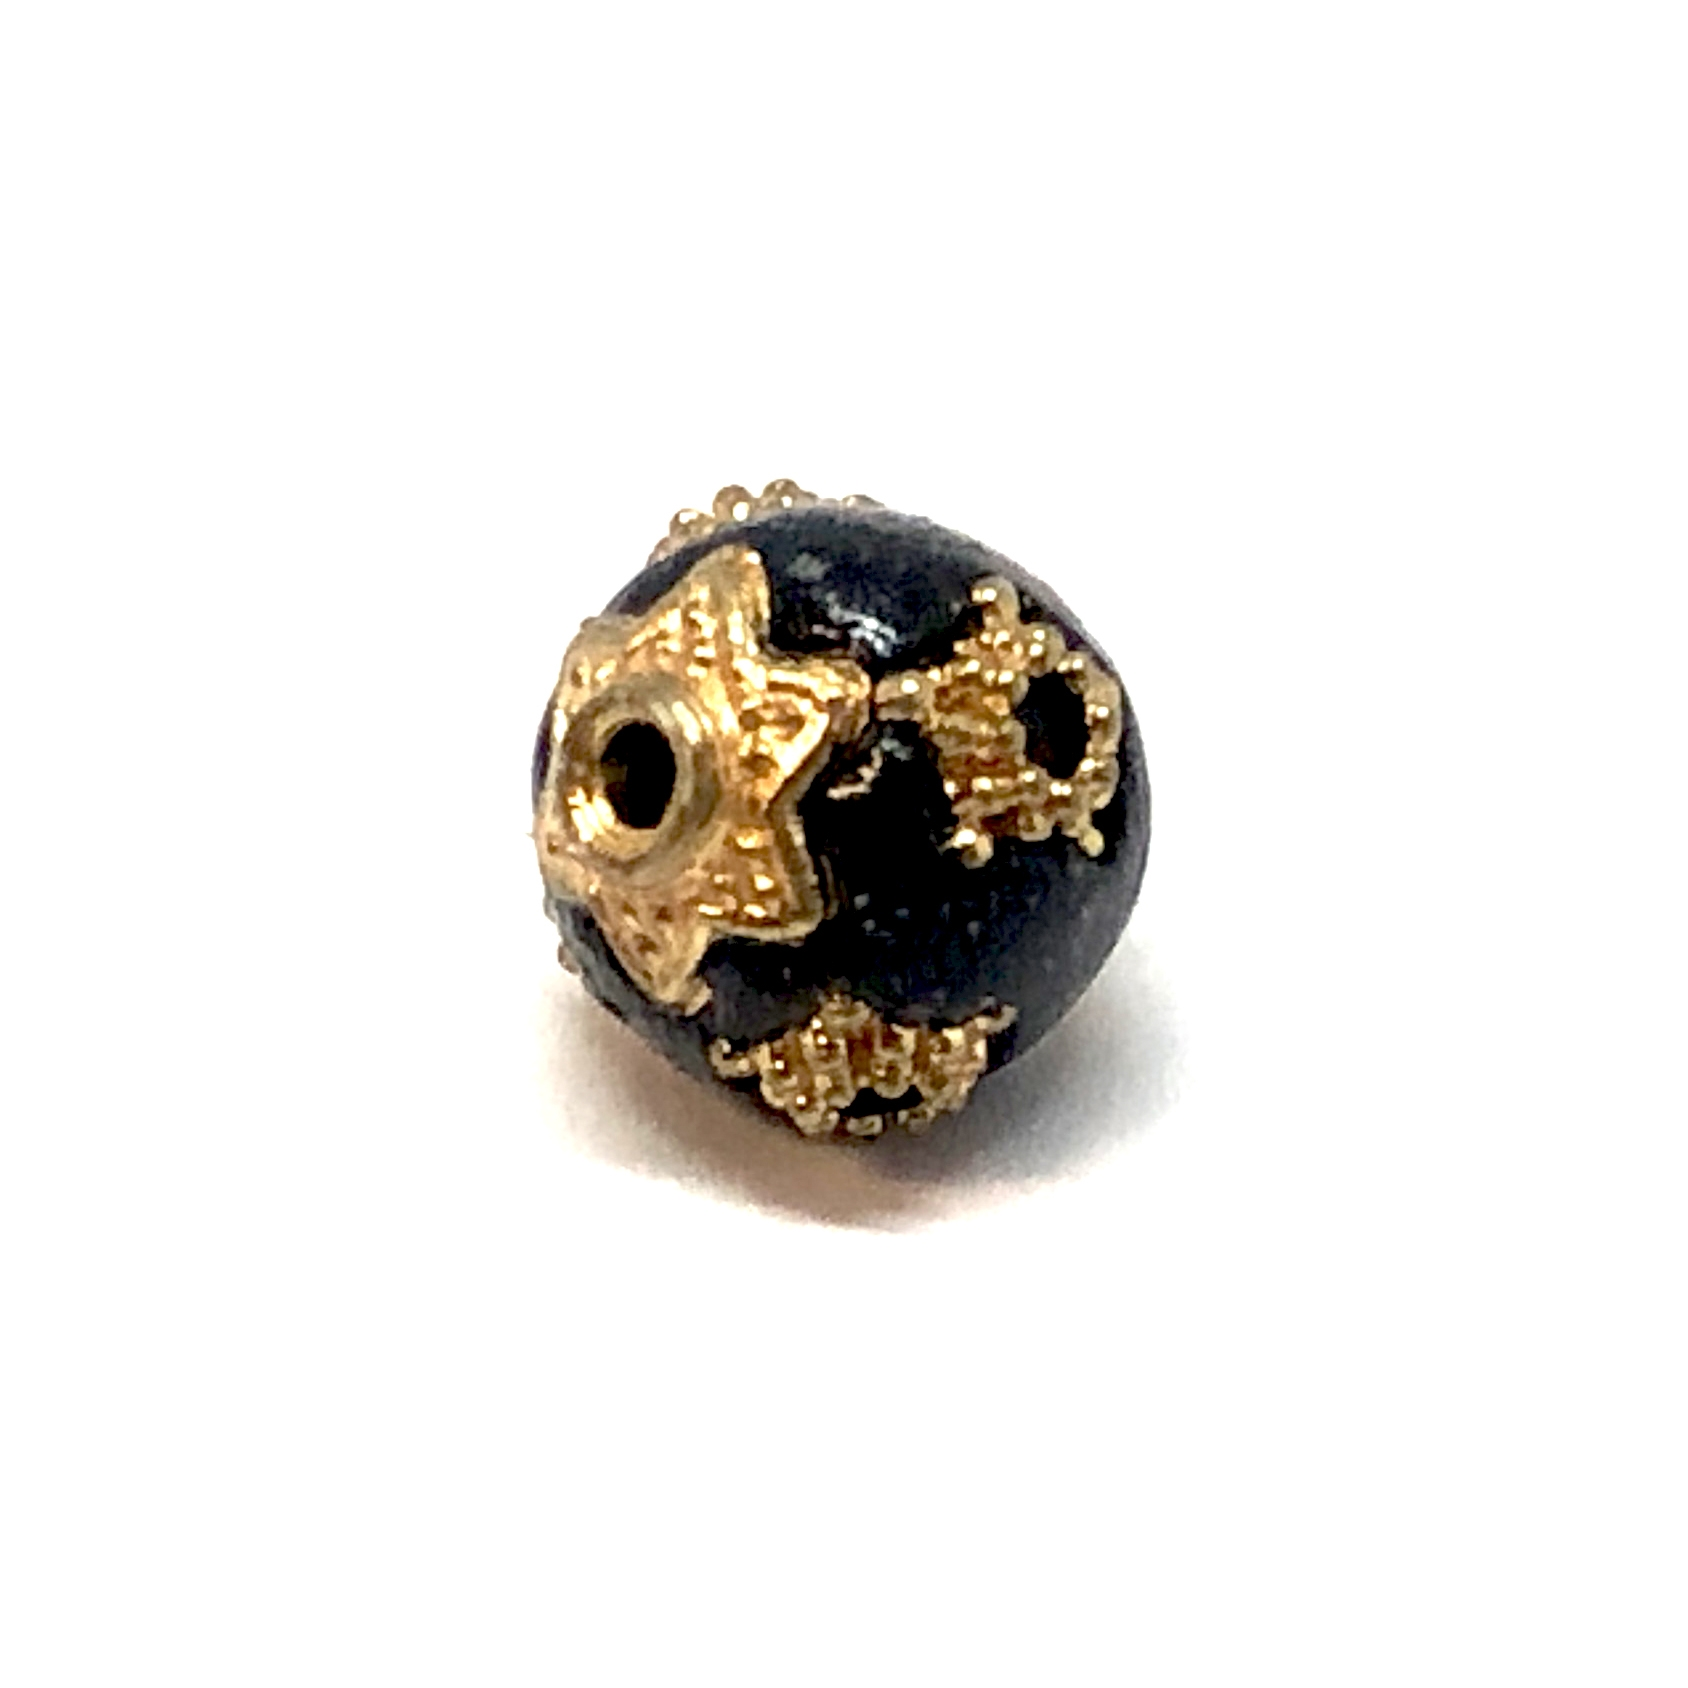 Handmade Indonesian Beads, Black/Gold, 11mm, 09175, beads, black beads, gold star beads, plastic beads, acrylic beads, beading supplies, jewelry making supplies, vintage jewelry supplies